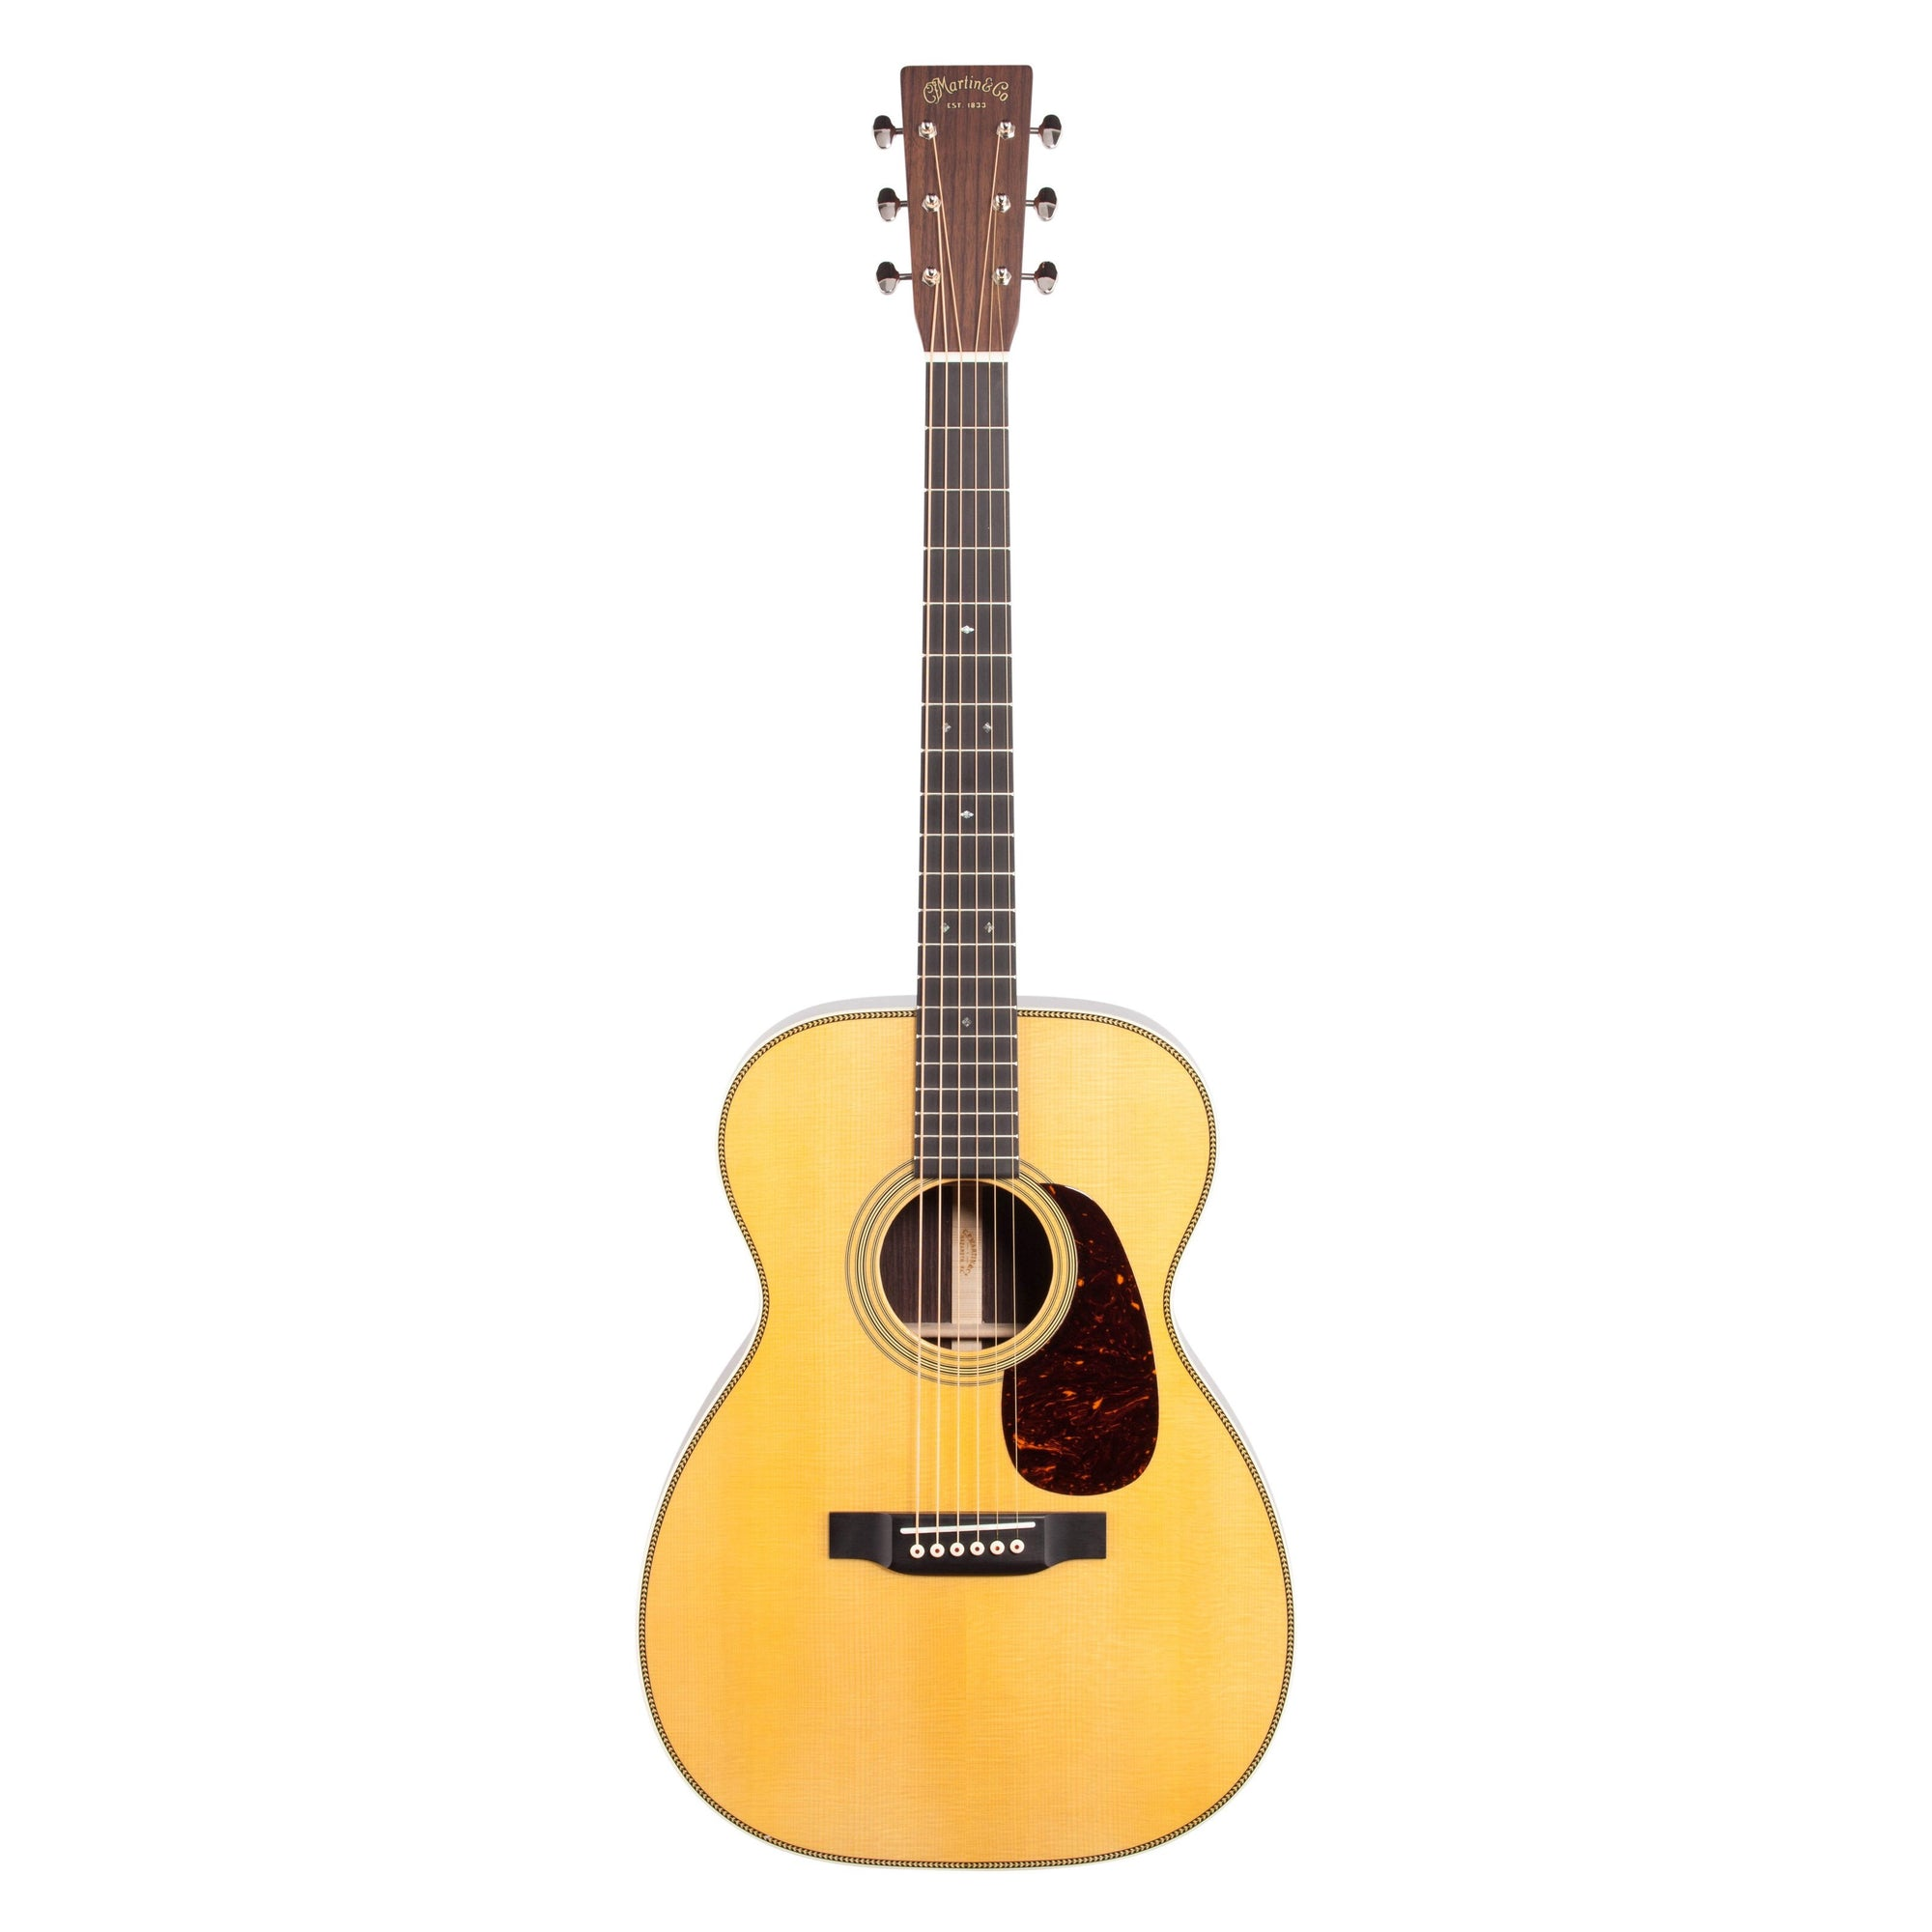 Martin 00-28 Redesign 2018 Acoustic Guitar (with Case), Natural